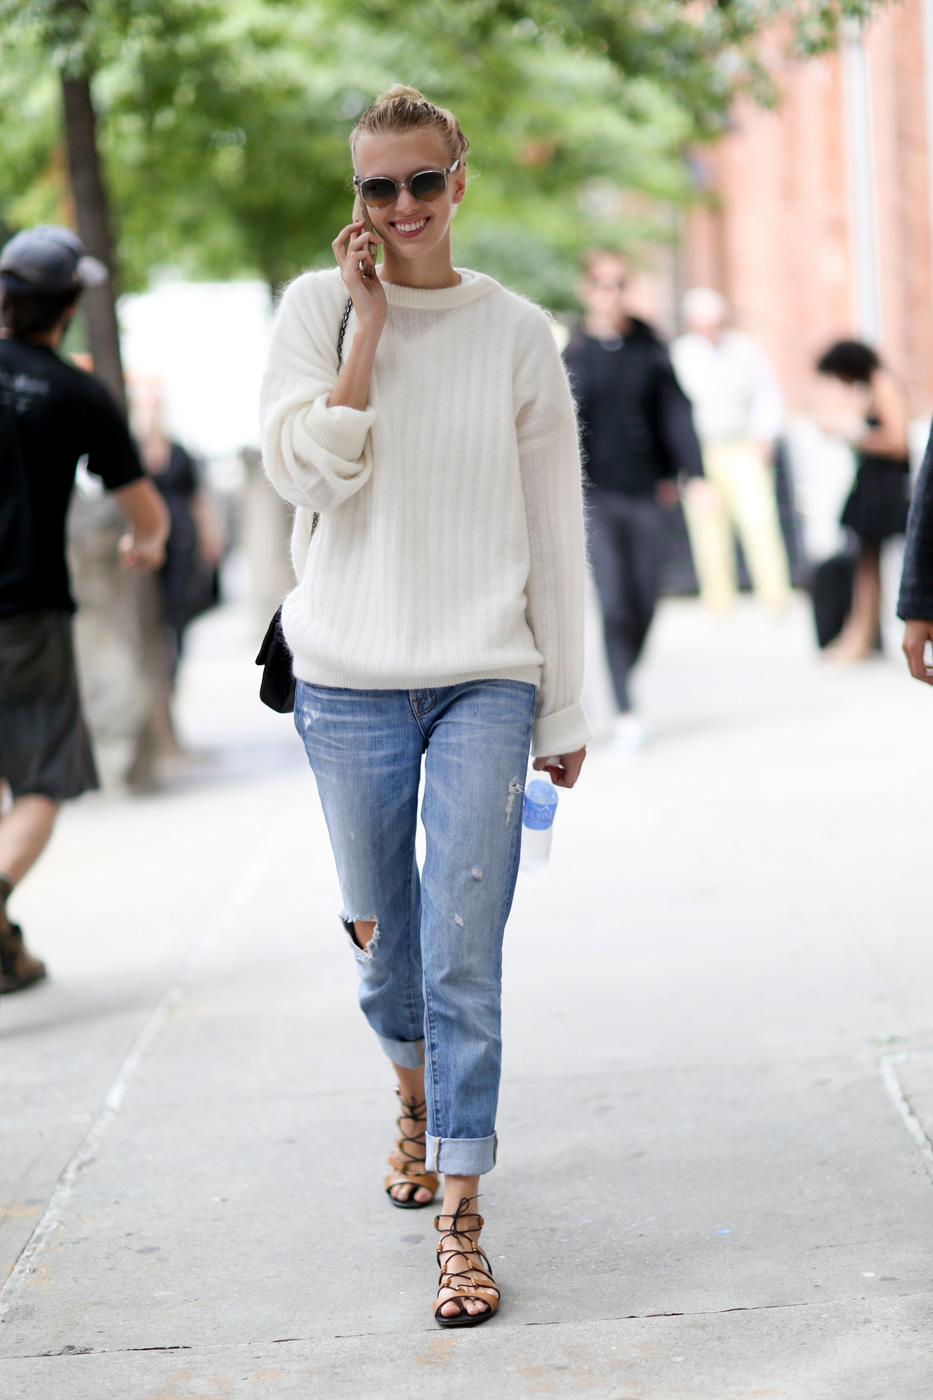 How to Wear Baggy Jeans - Outfit Ideas HQ